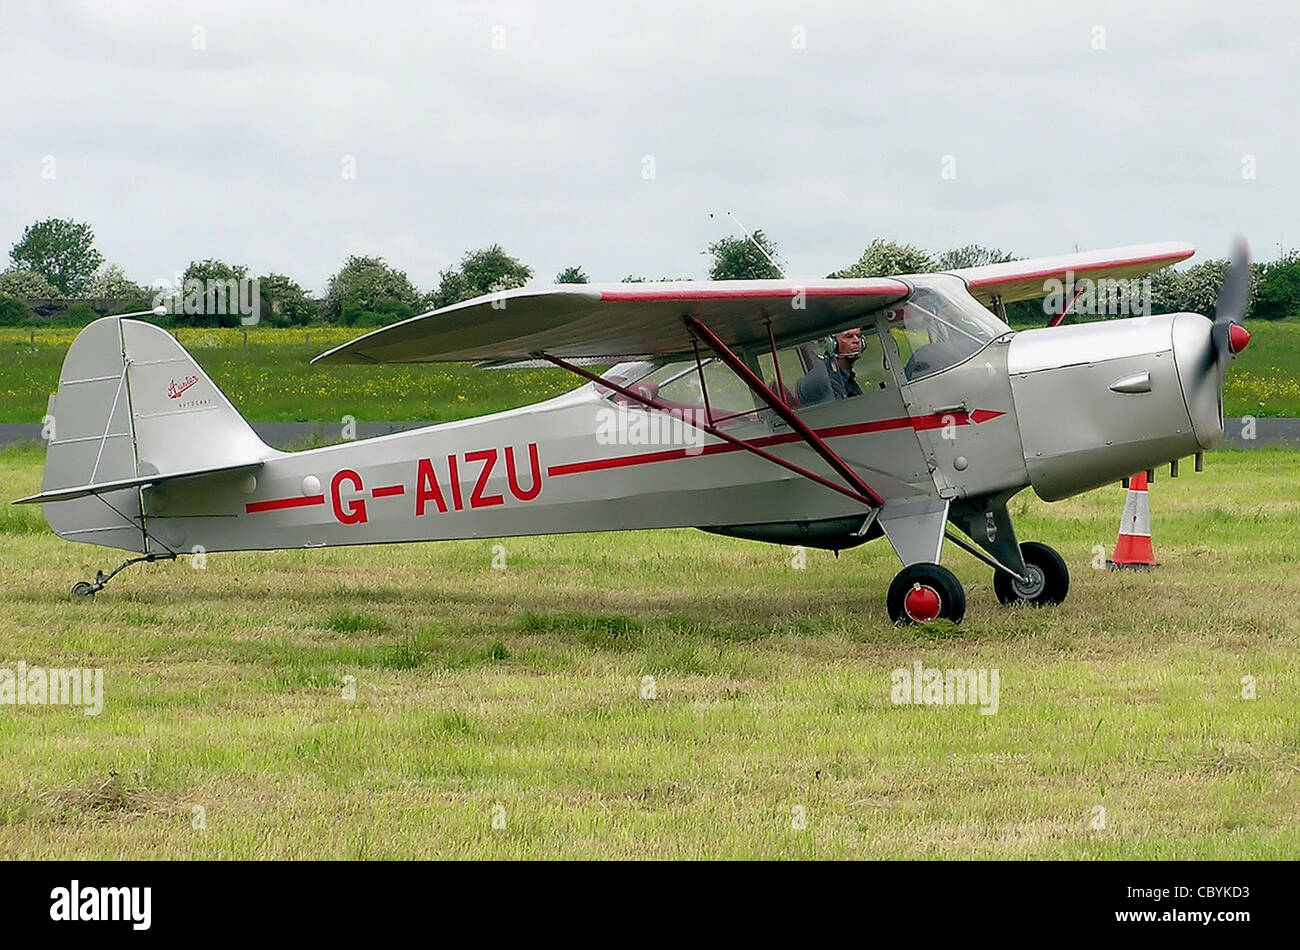 Auster 5J1 Autocrat of 1946 (UK registration G-AIZU) at Keevil Airfield, Wiltshire, England. - Stock Image